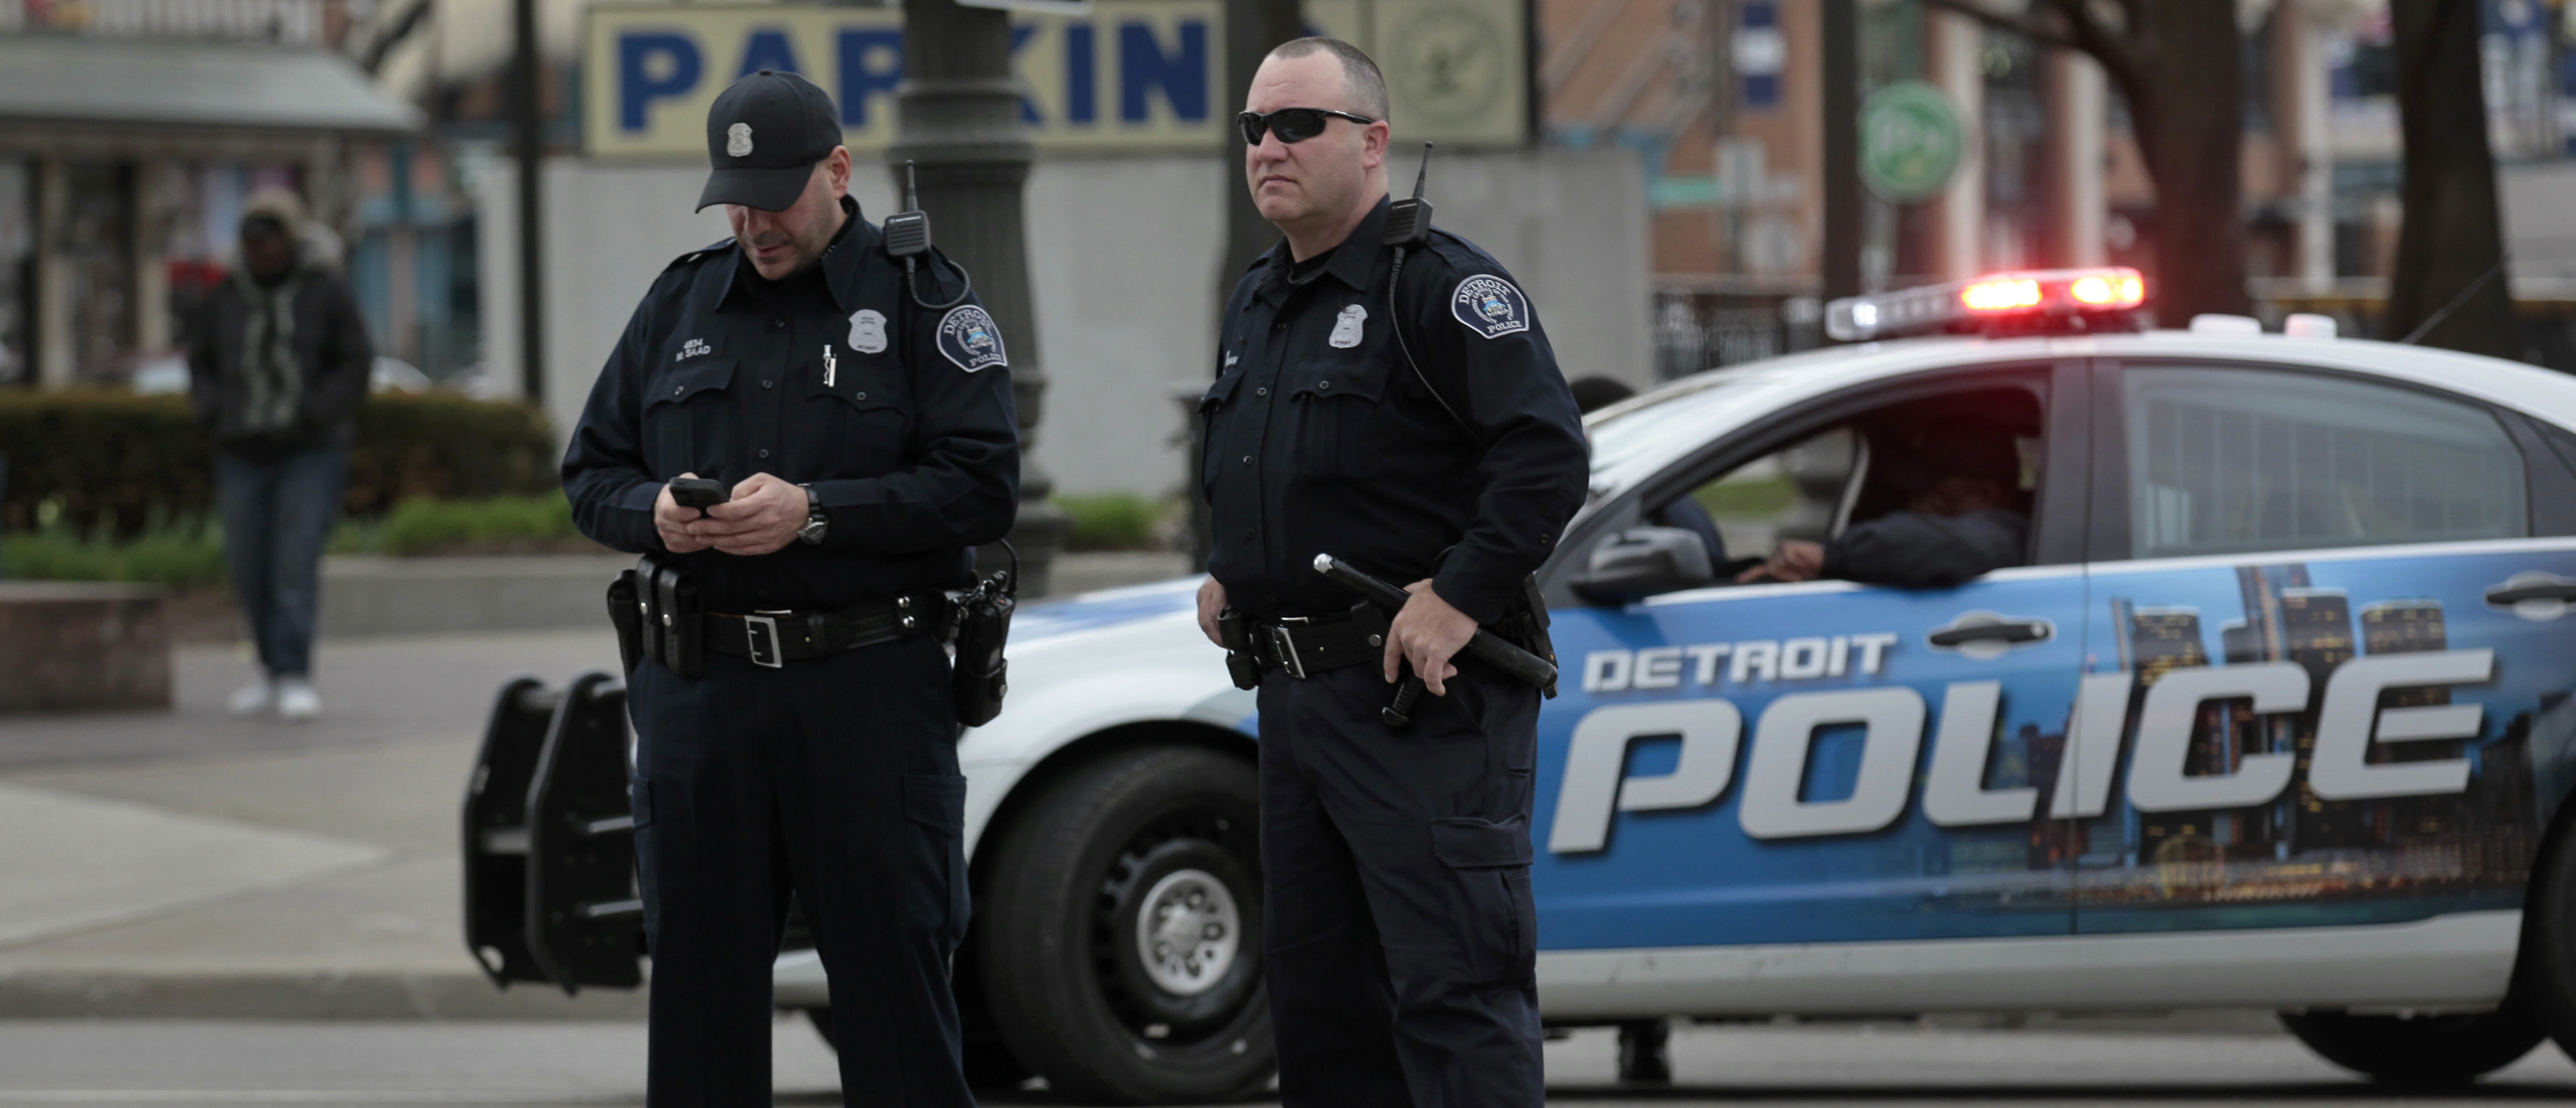 Michigan police monitor a protest downtown Detroit (Reuters, 06/26/18)